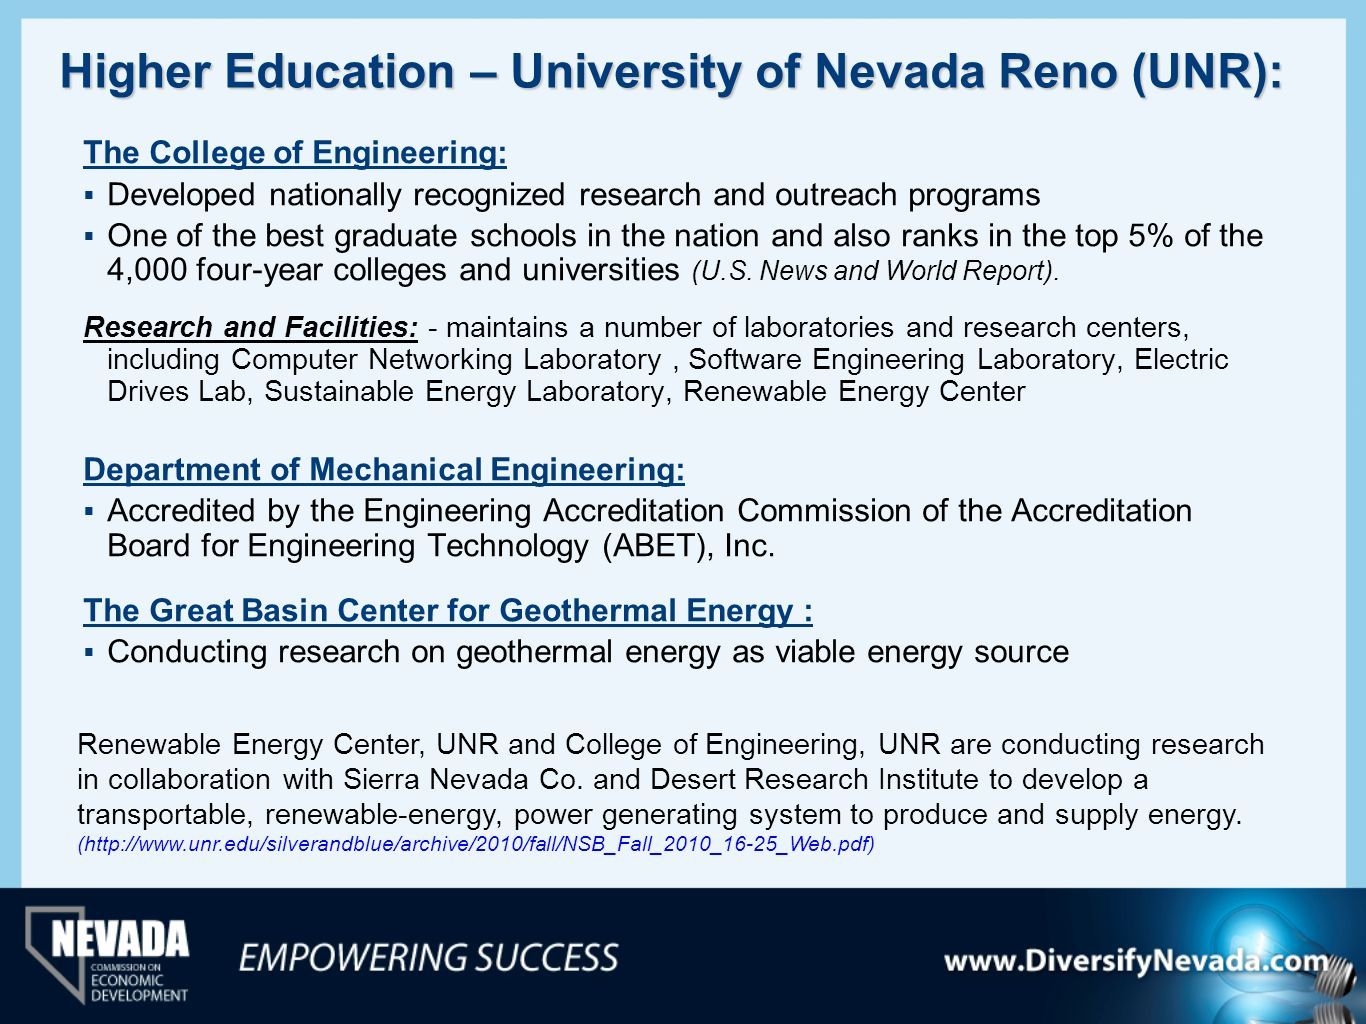 Higher Education – University of Nevada Reno (UNR):